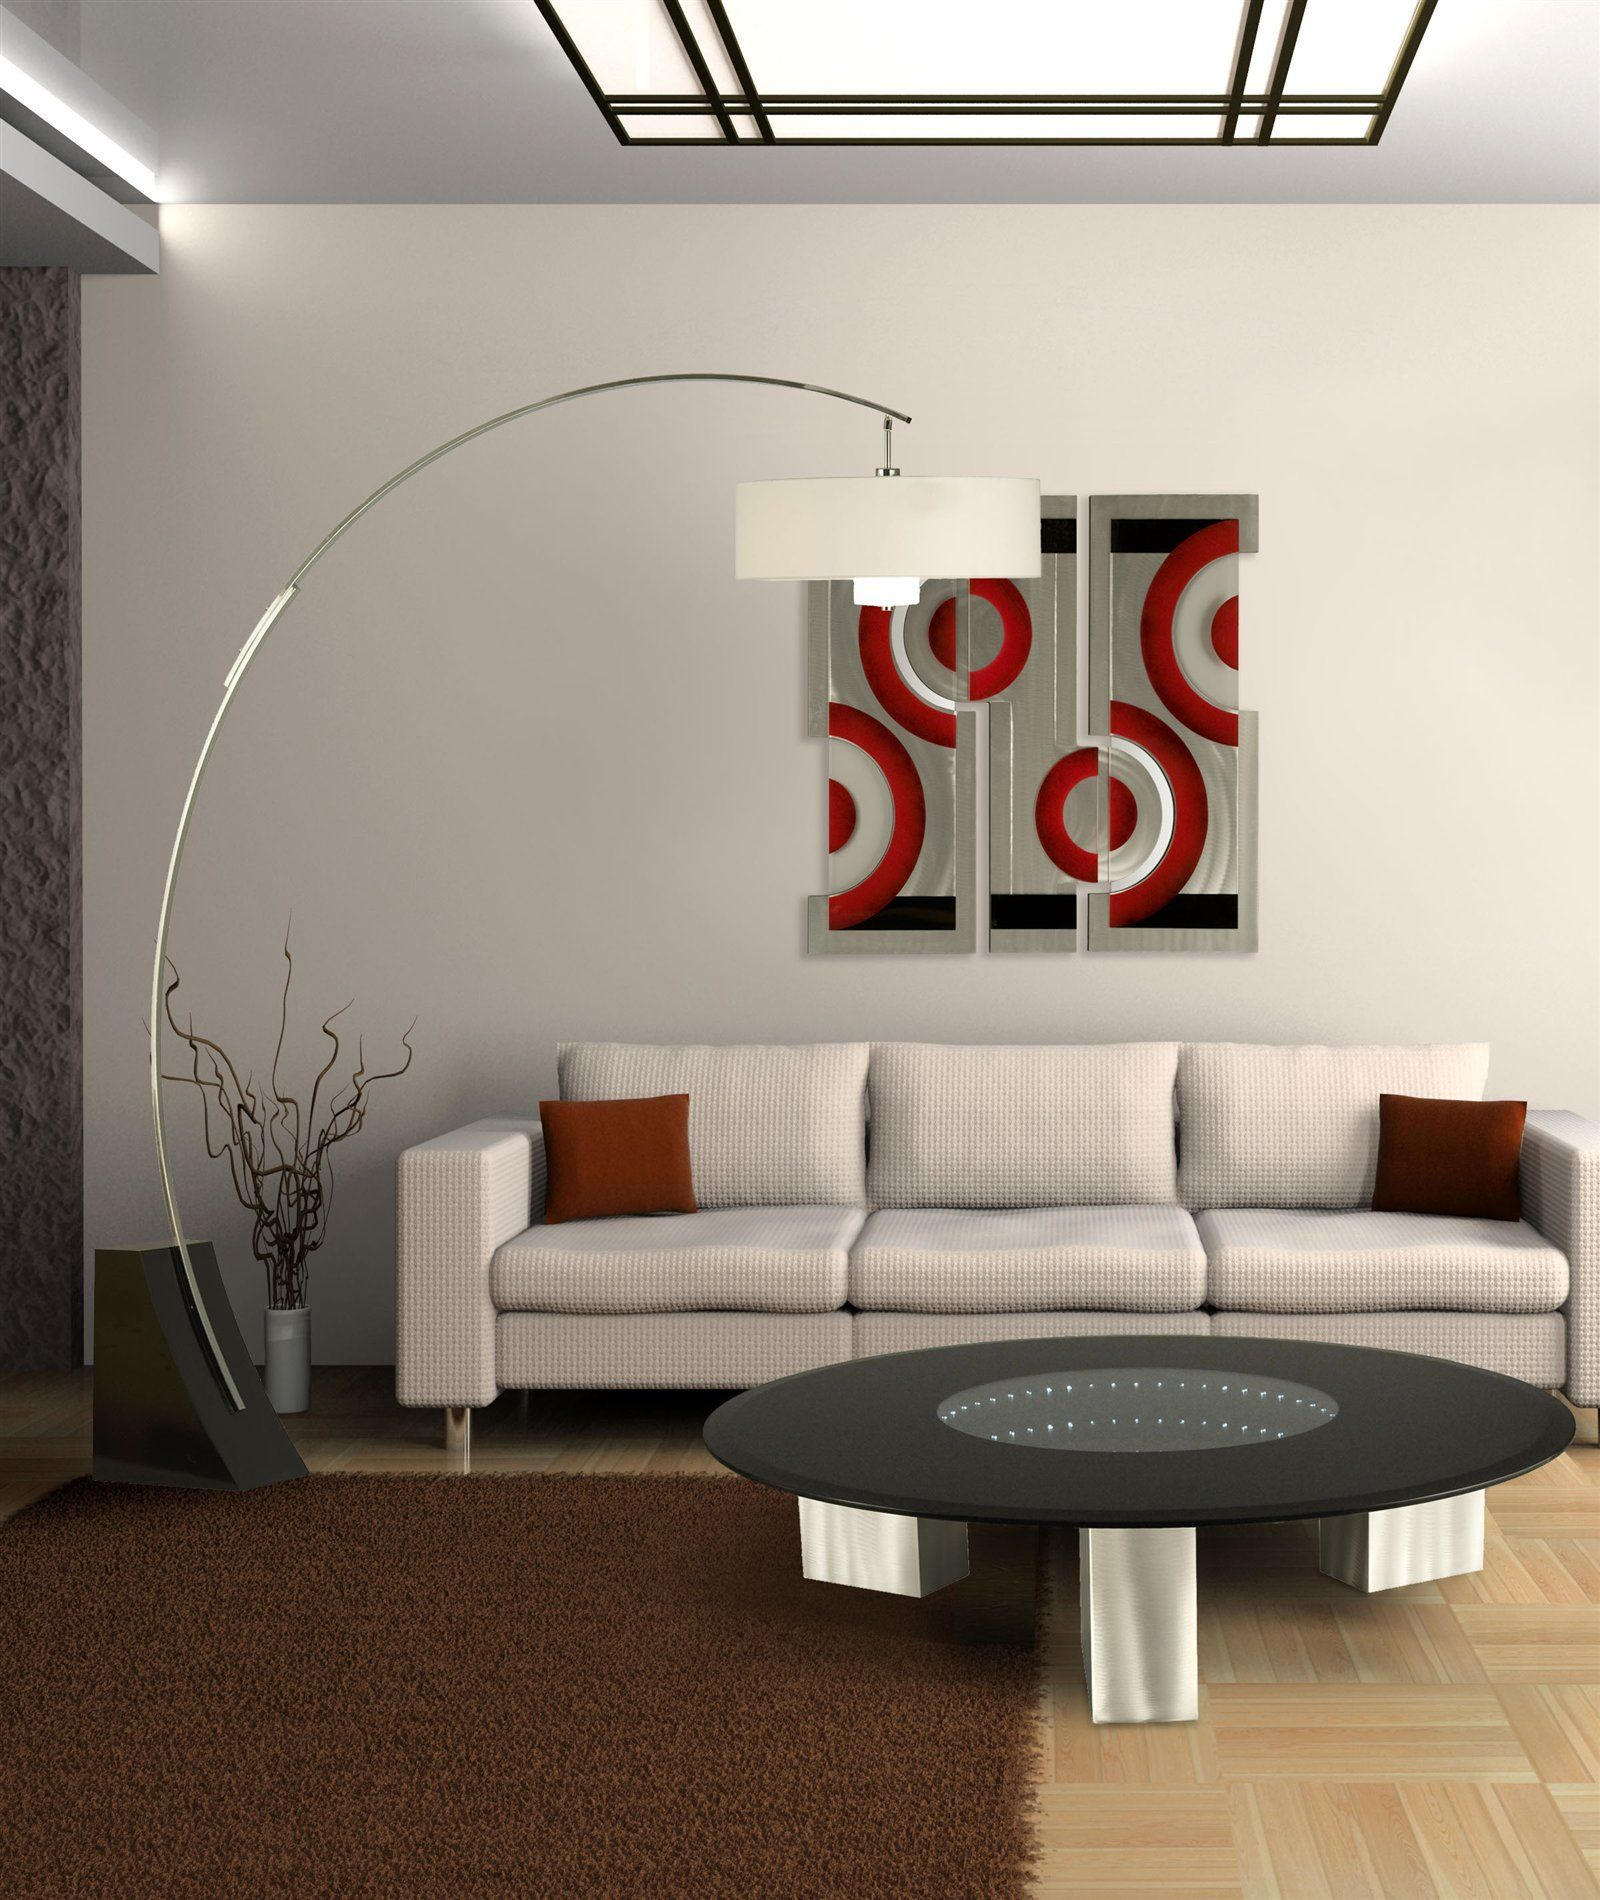 Tall lamps in living room - Modern